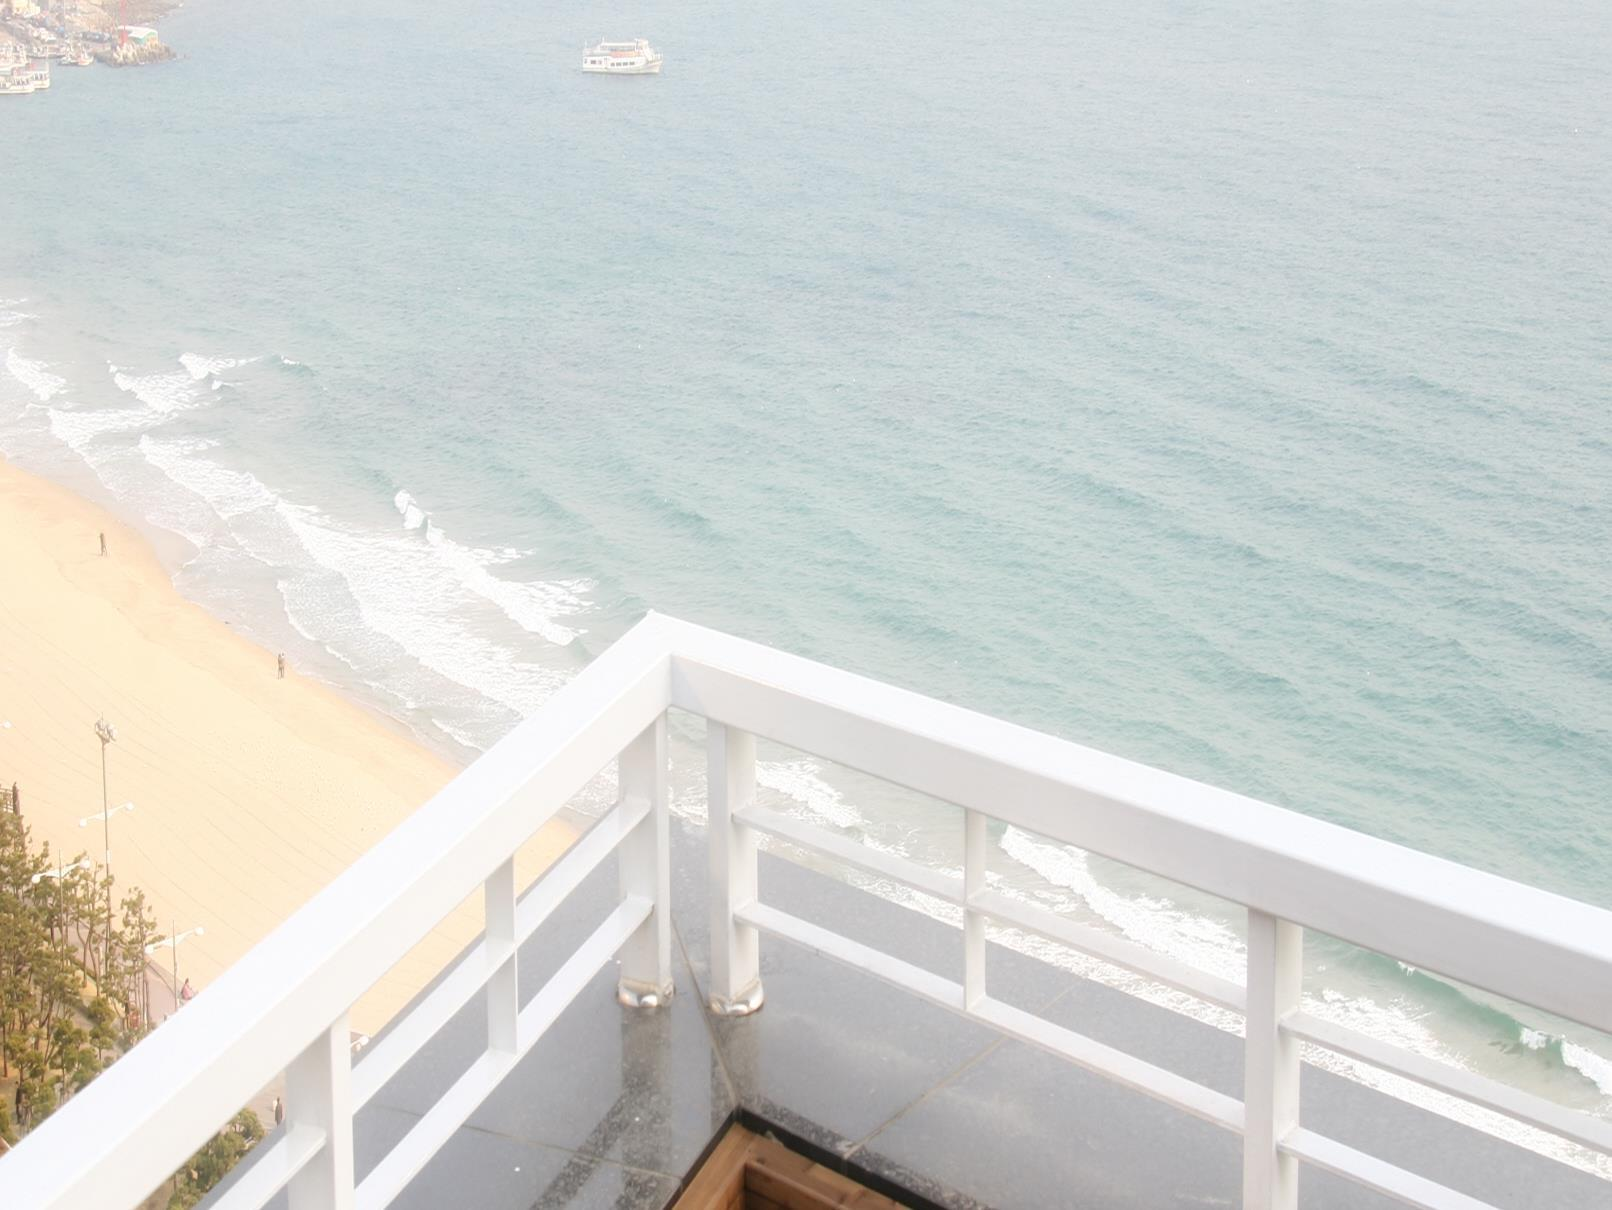 Best Price On Sunset Hotel In Busan   Reviews